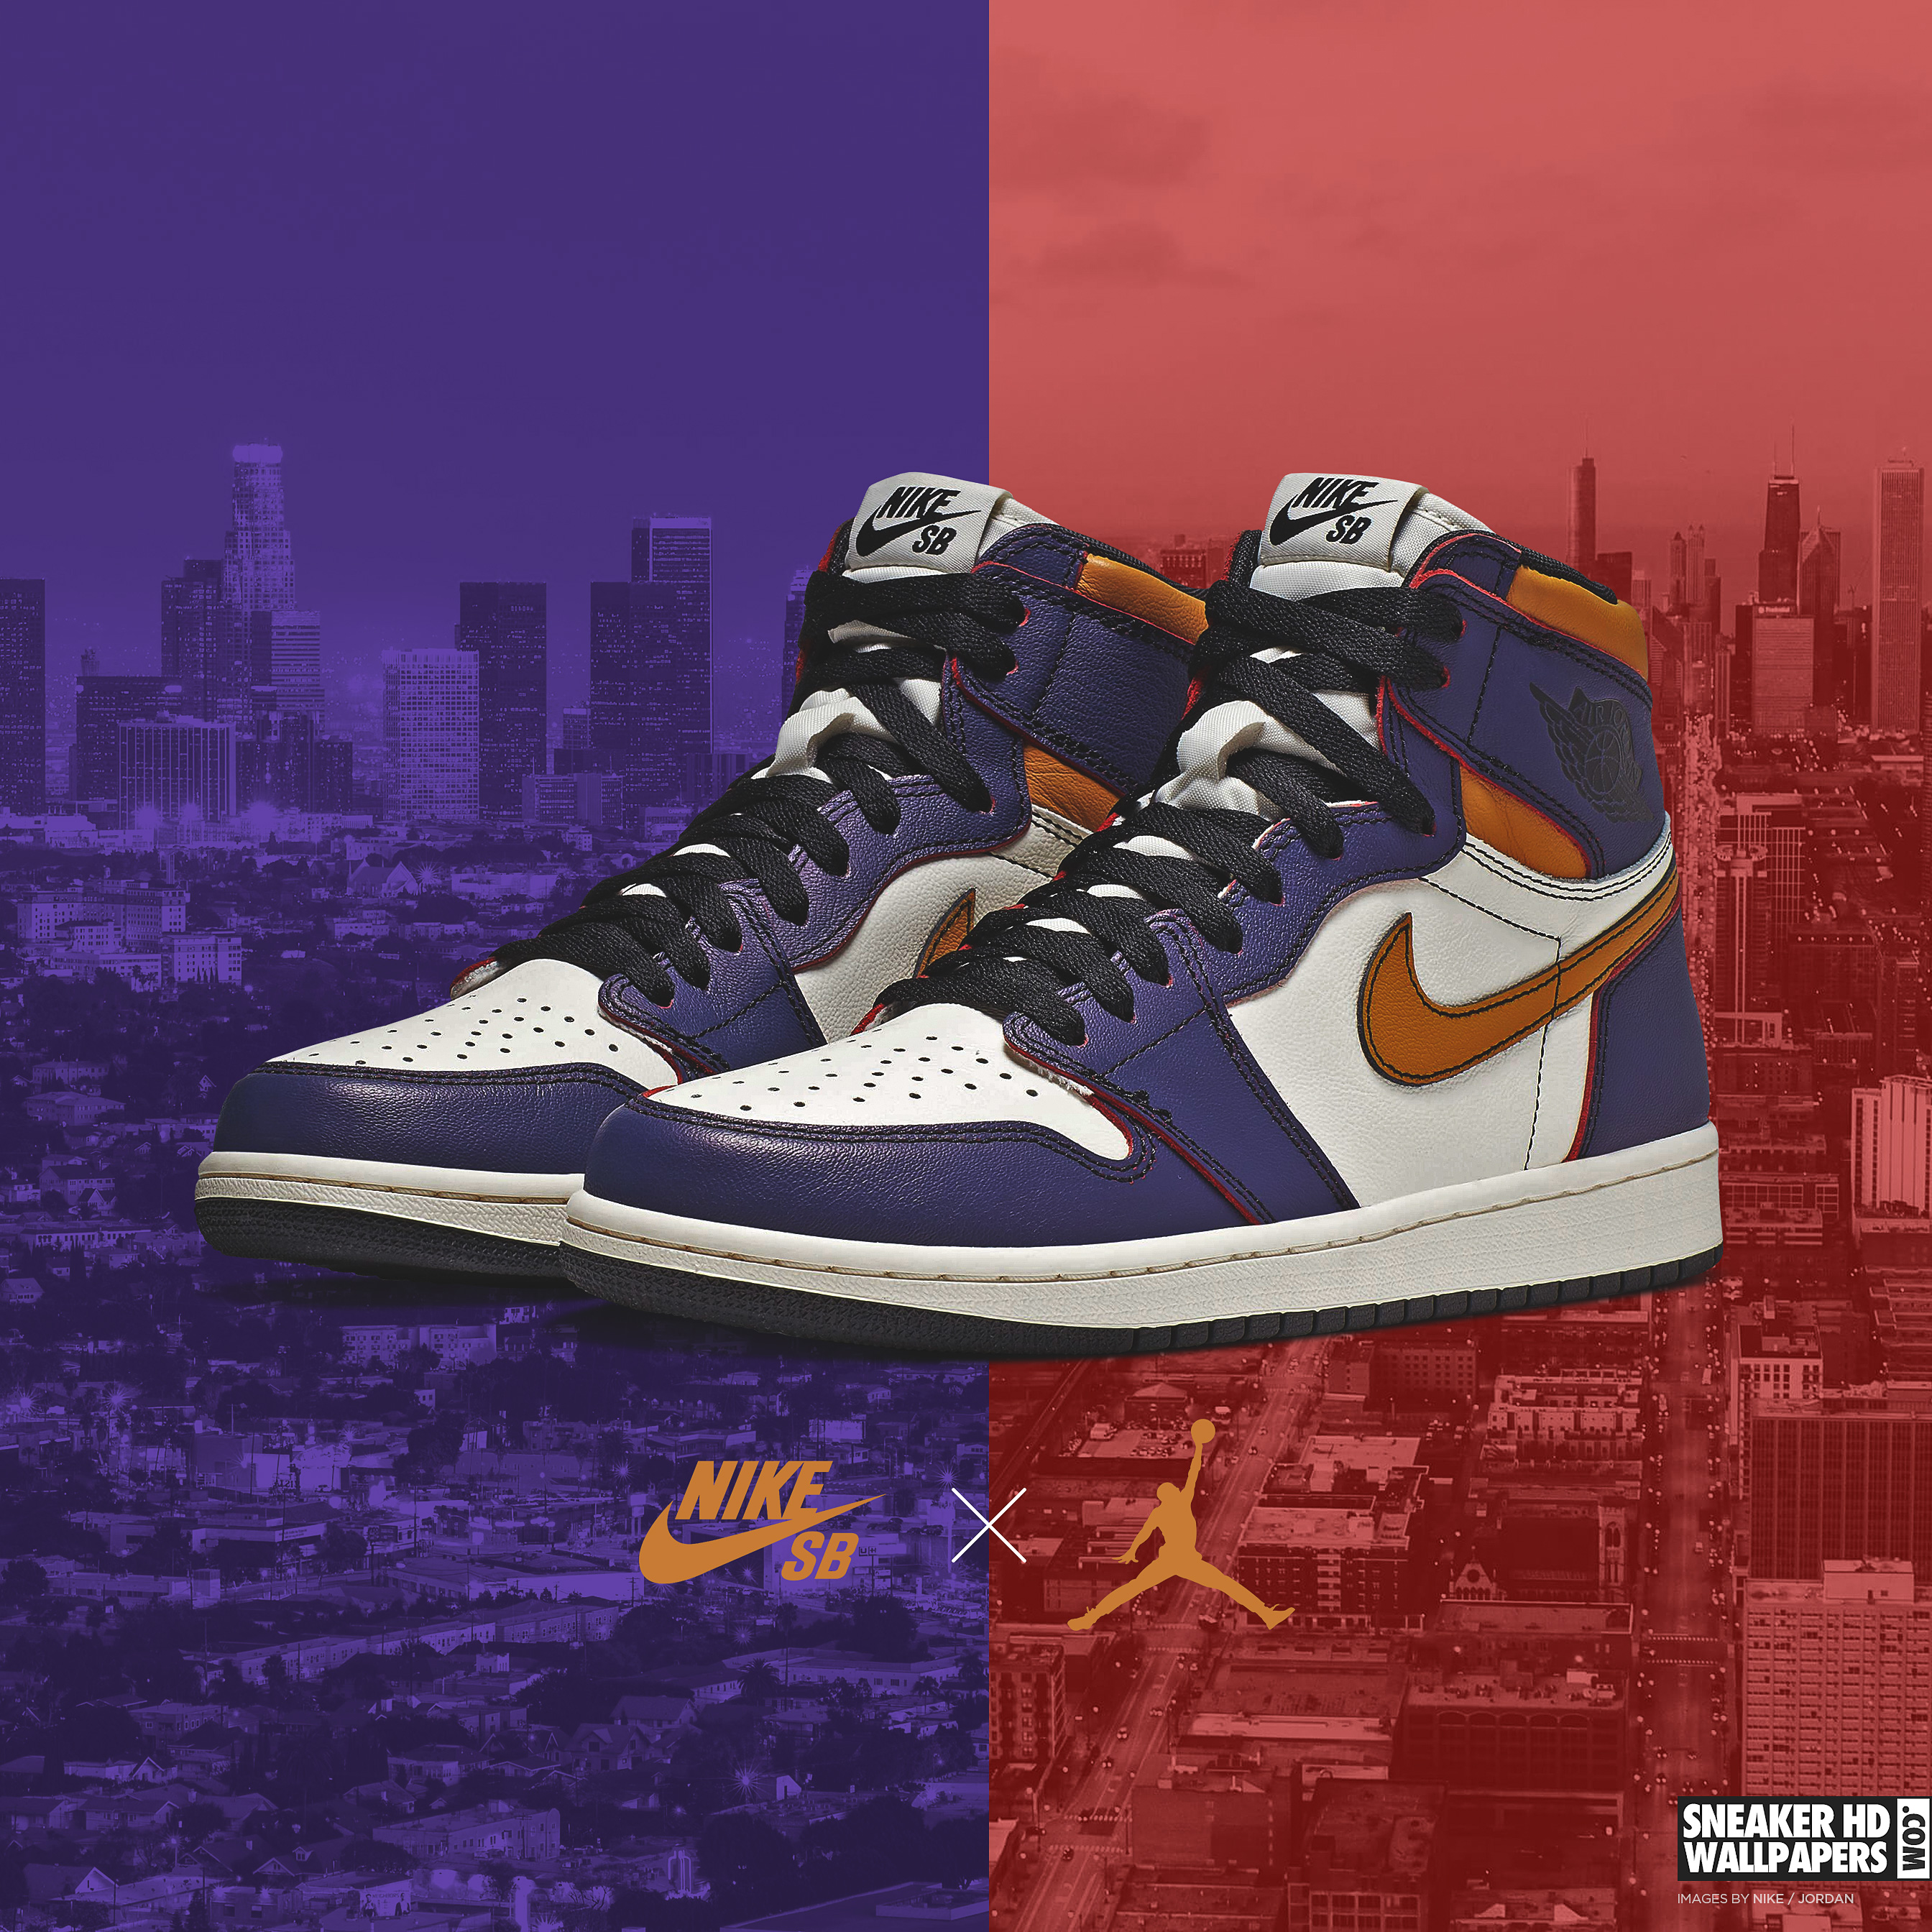 SneakerHDWallpapers.com – Your favorite sneakers in HD and mobile wallpaper resolutions